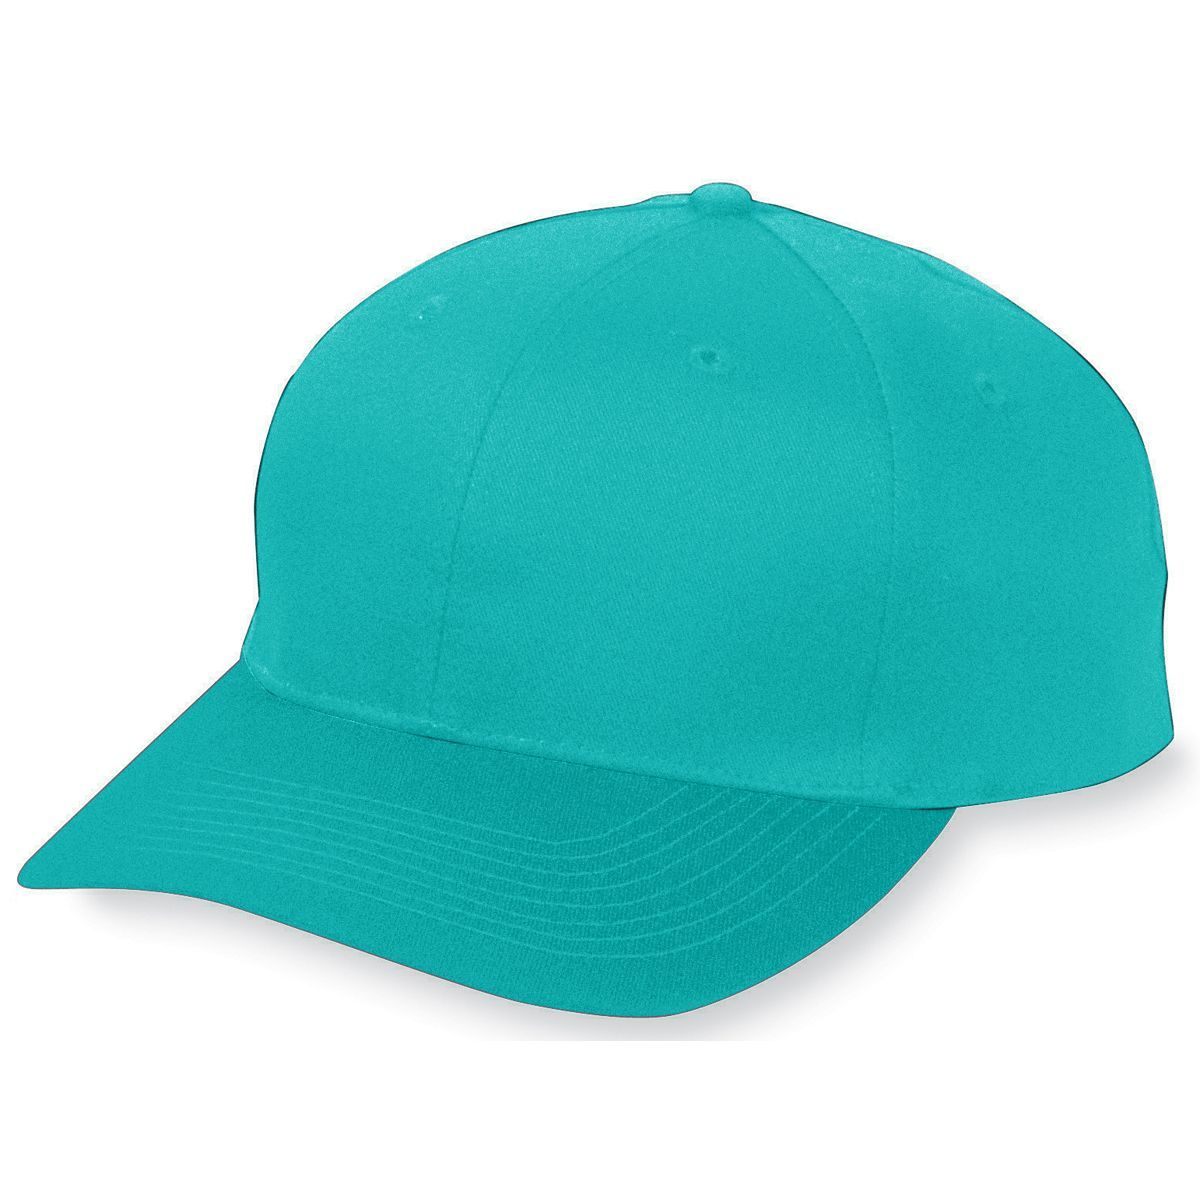 Youth Six-Panel Cotton Twill Low-Profile Cap - TEAL